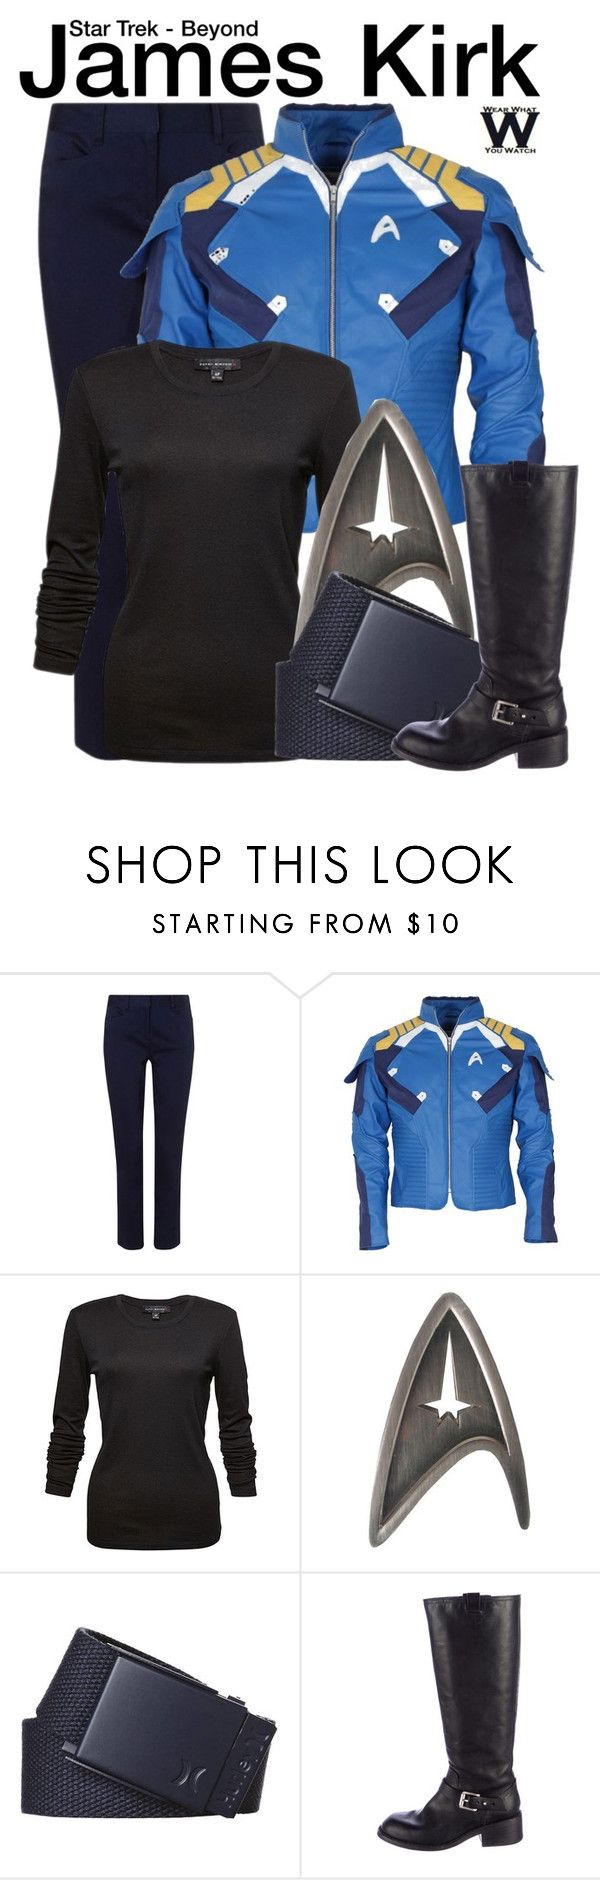 """""""Star Trek Beyond"""" by wearwhatyouwatch ❤ liked on Polyvore featuring EAST, Hurley, rag & bone, wearwhatyouwatch and film"""